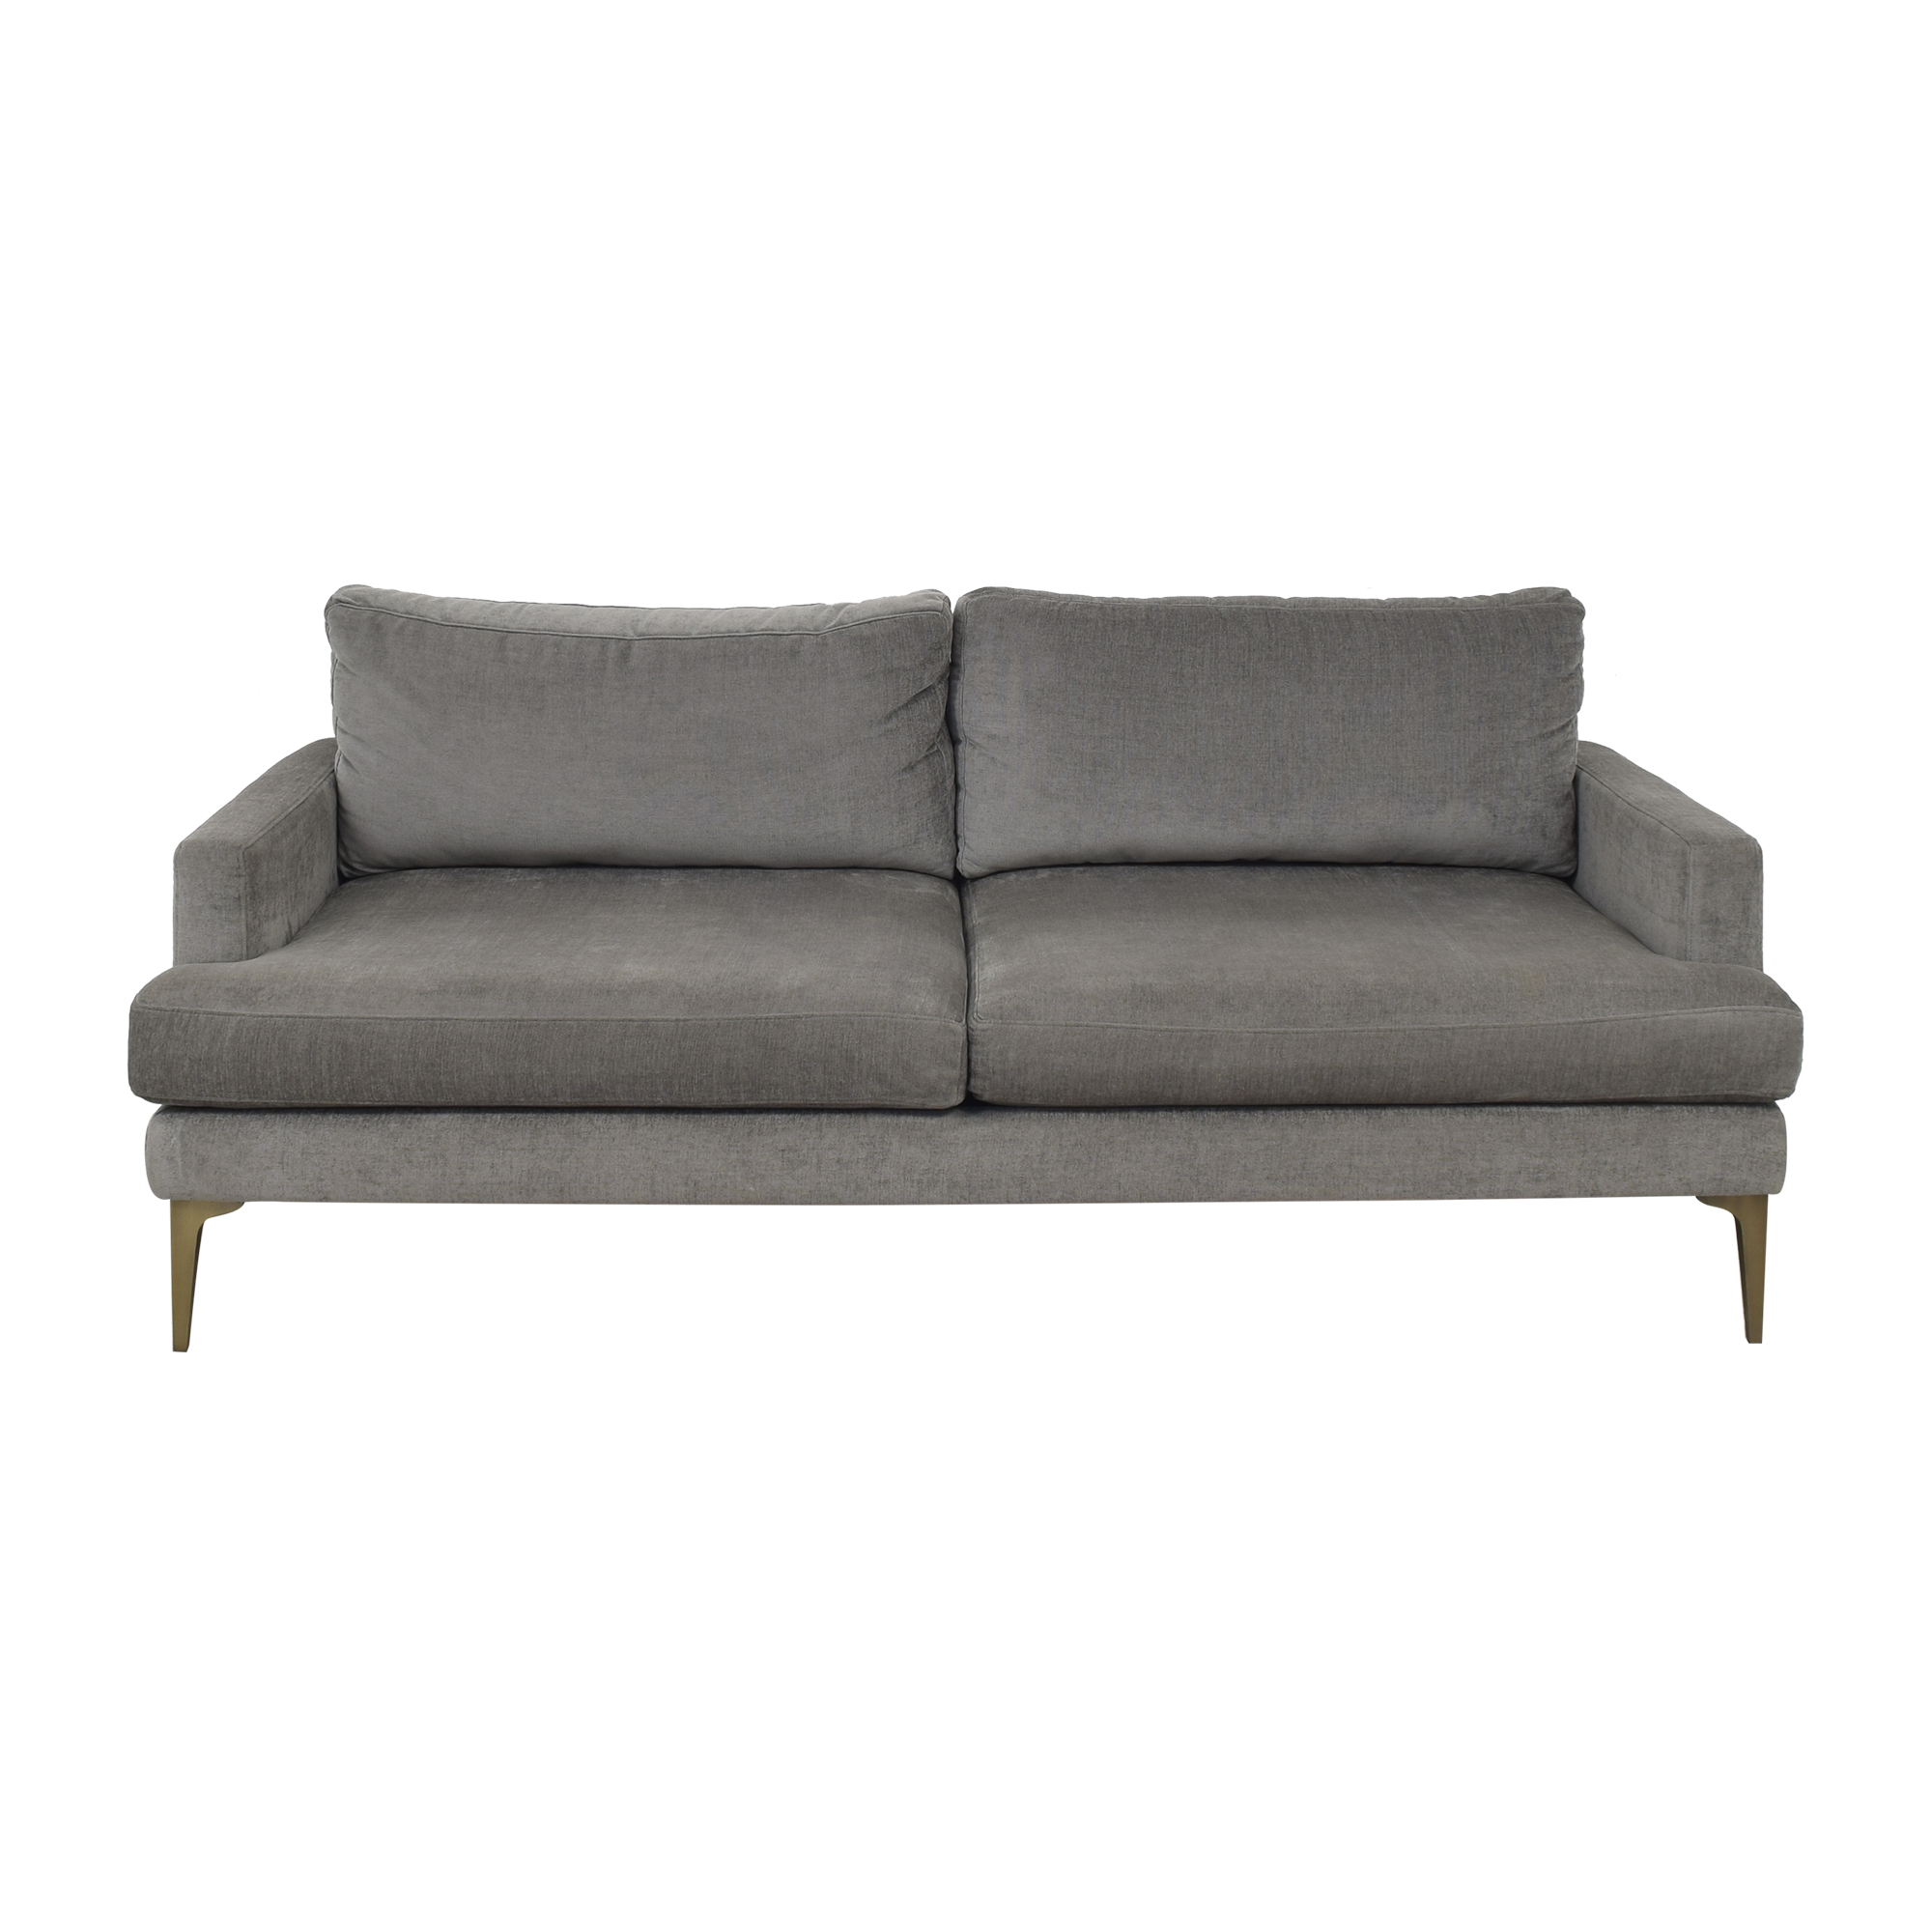 West Elm West Elm Andes Sofa second hand